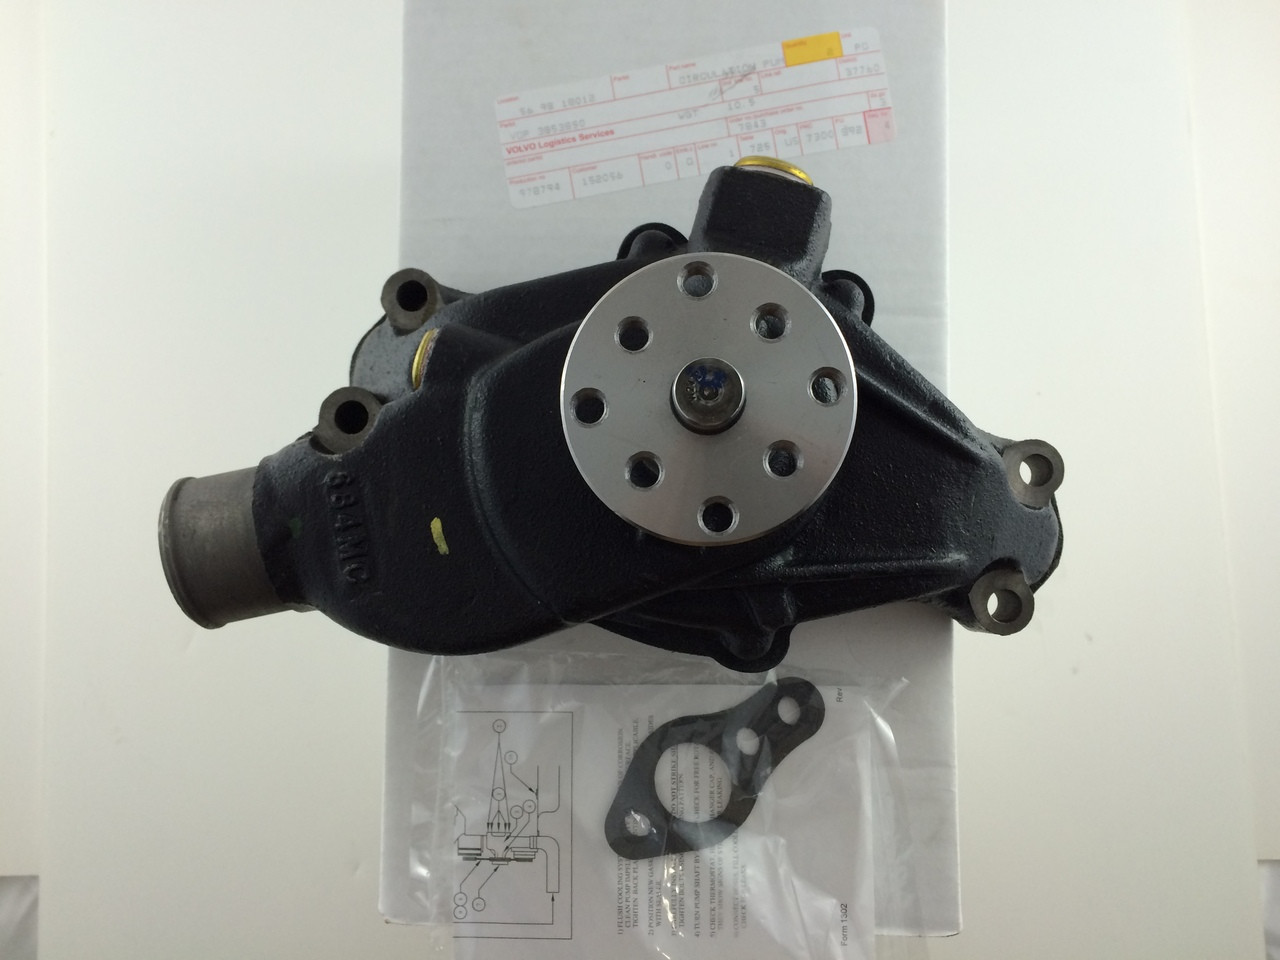 hight resolution of  132 58 circulation water pump 3853850 in stock ready to ship cecil marine